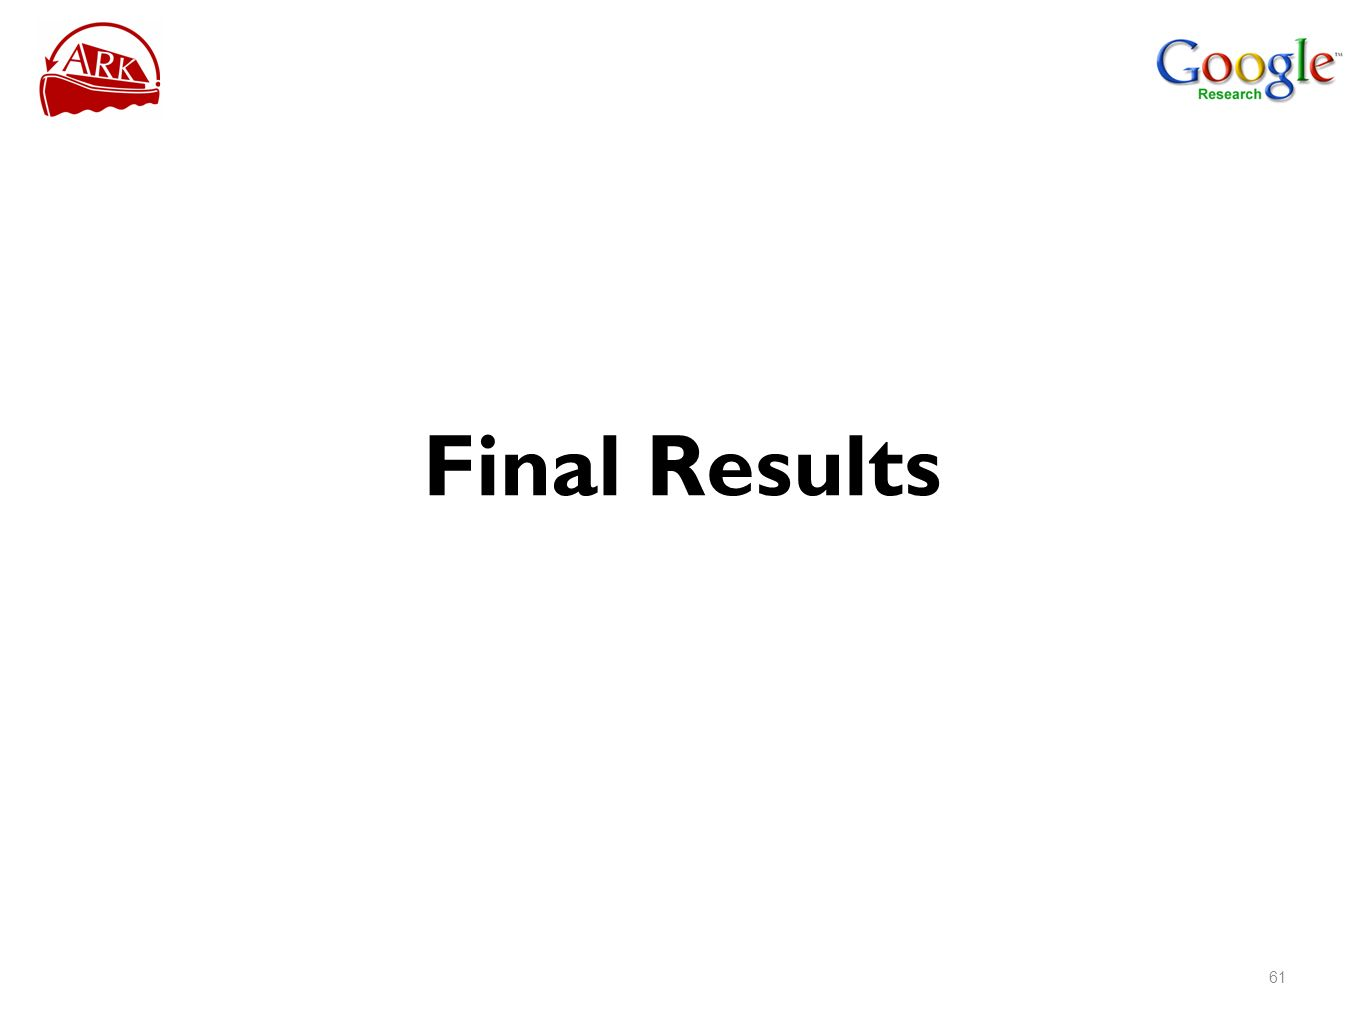 Final Results